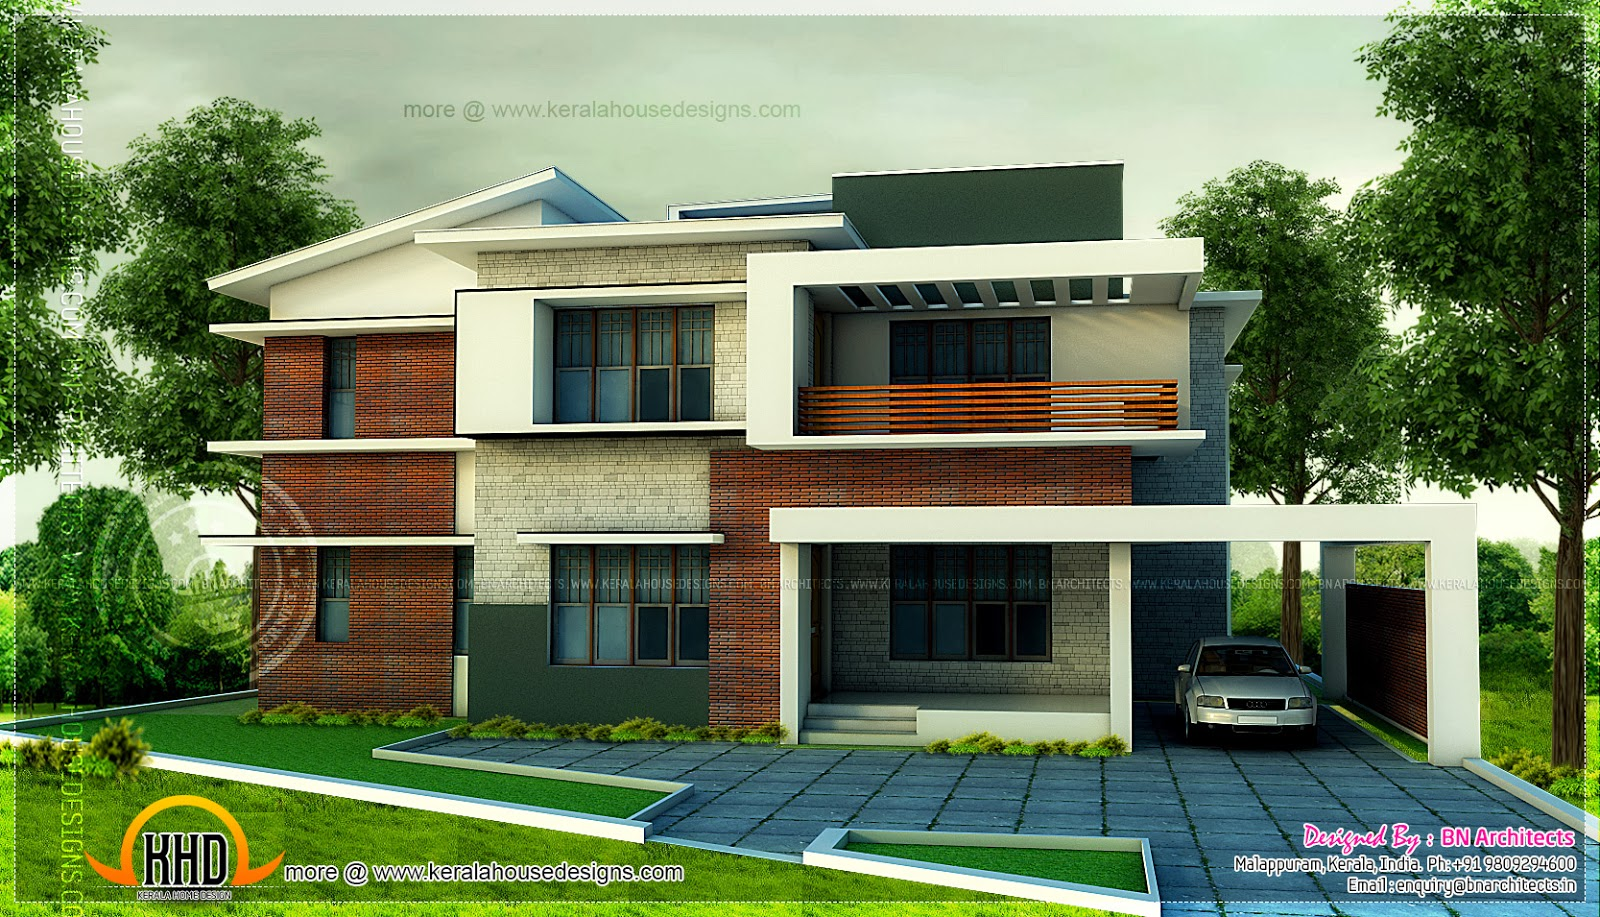 5 bedroom modern home in 3440 sq feet floor plan for Modern 5 bedroom house floor plans